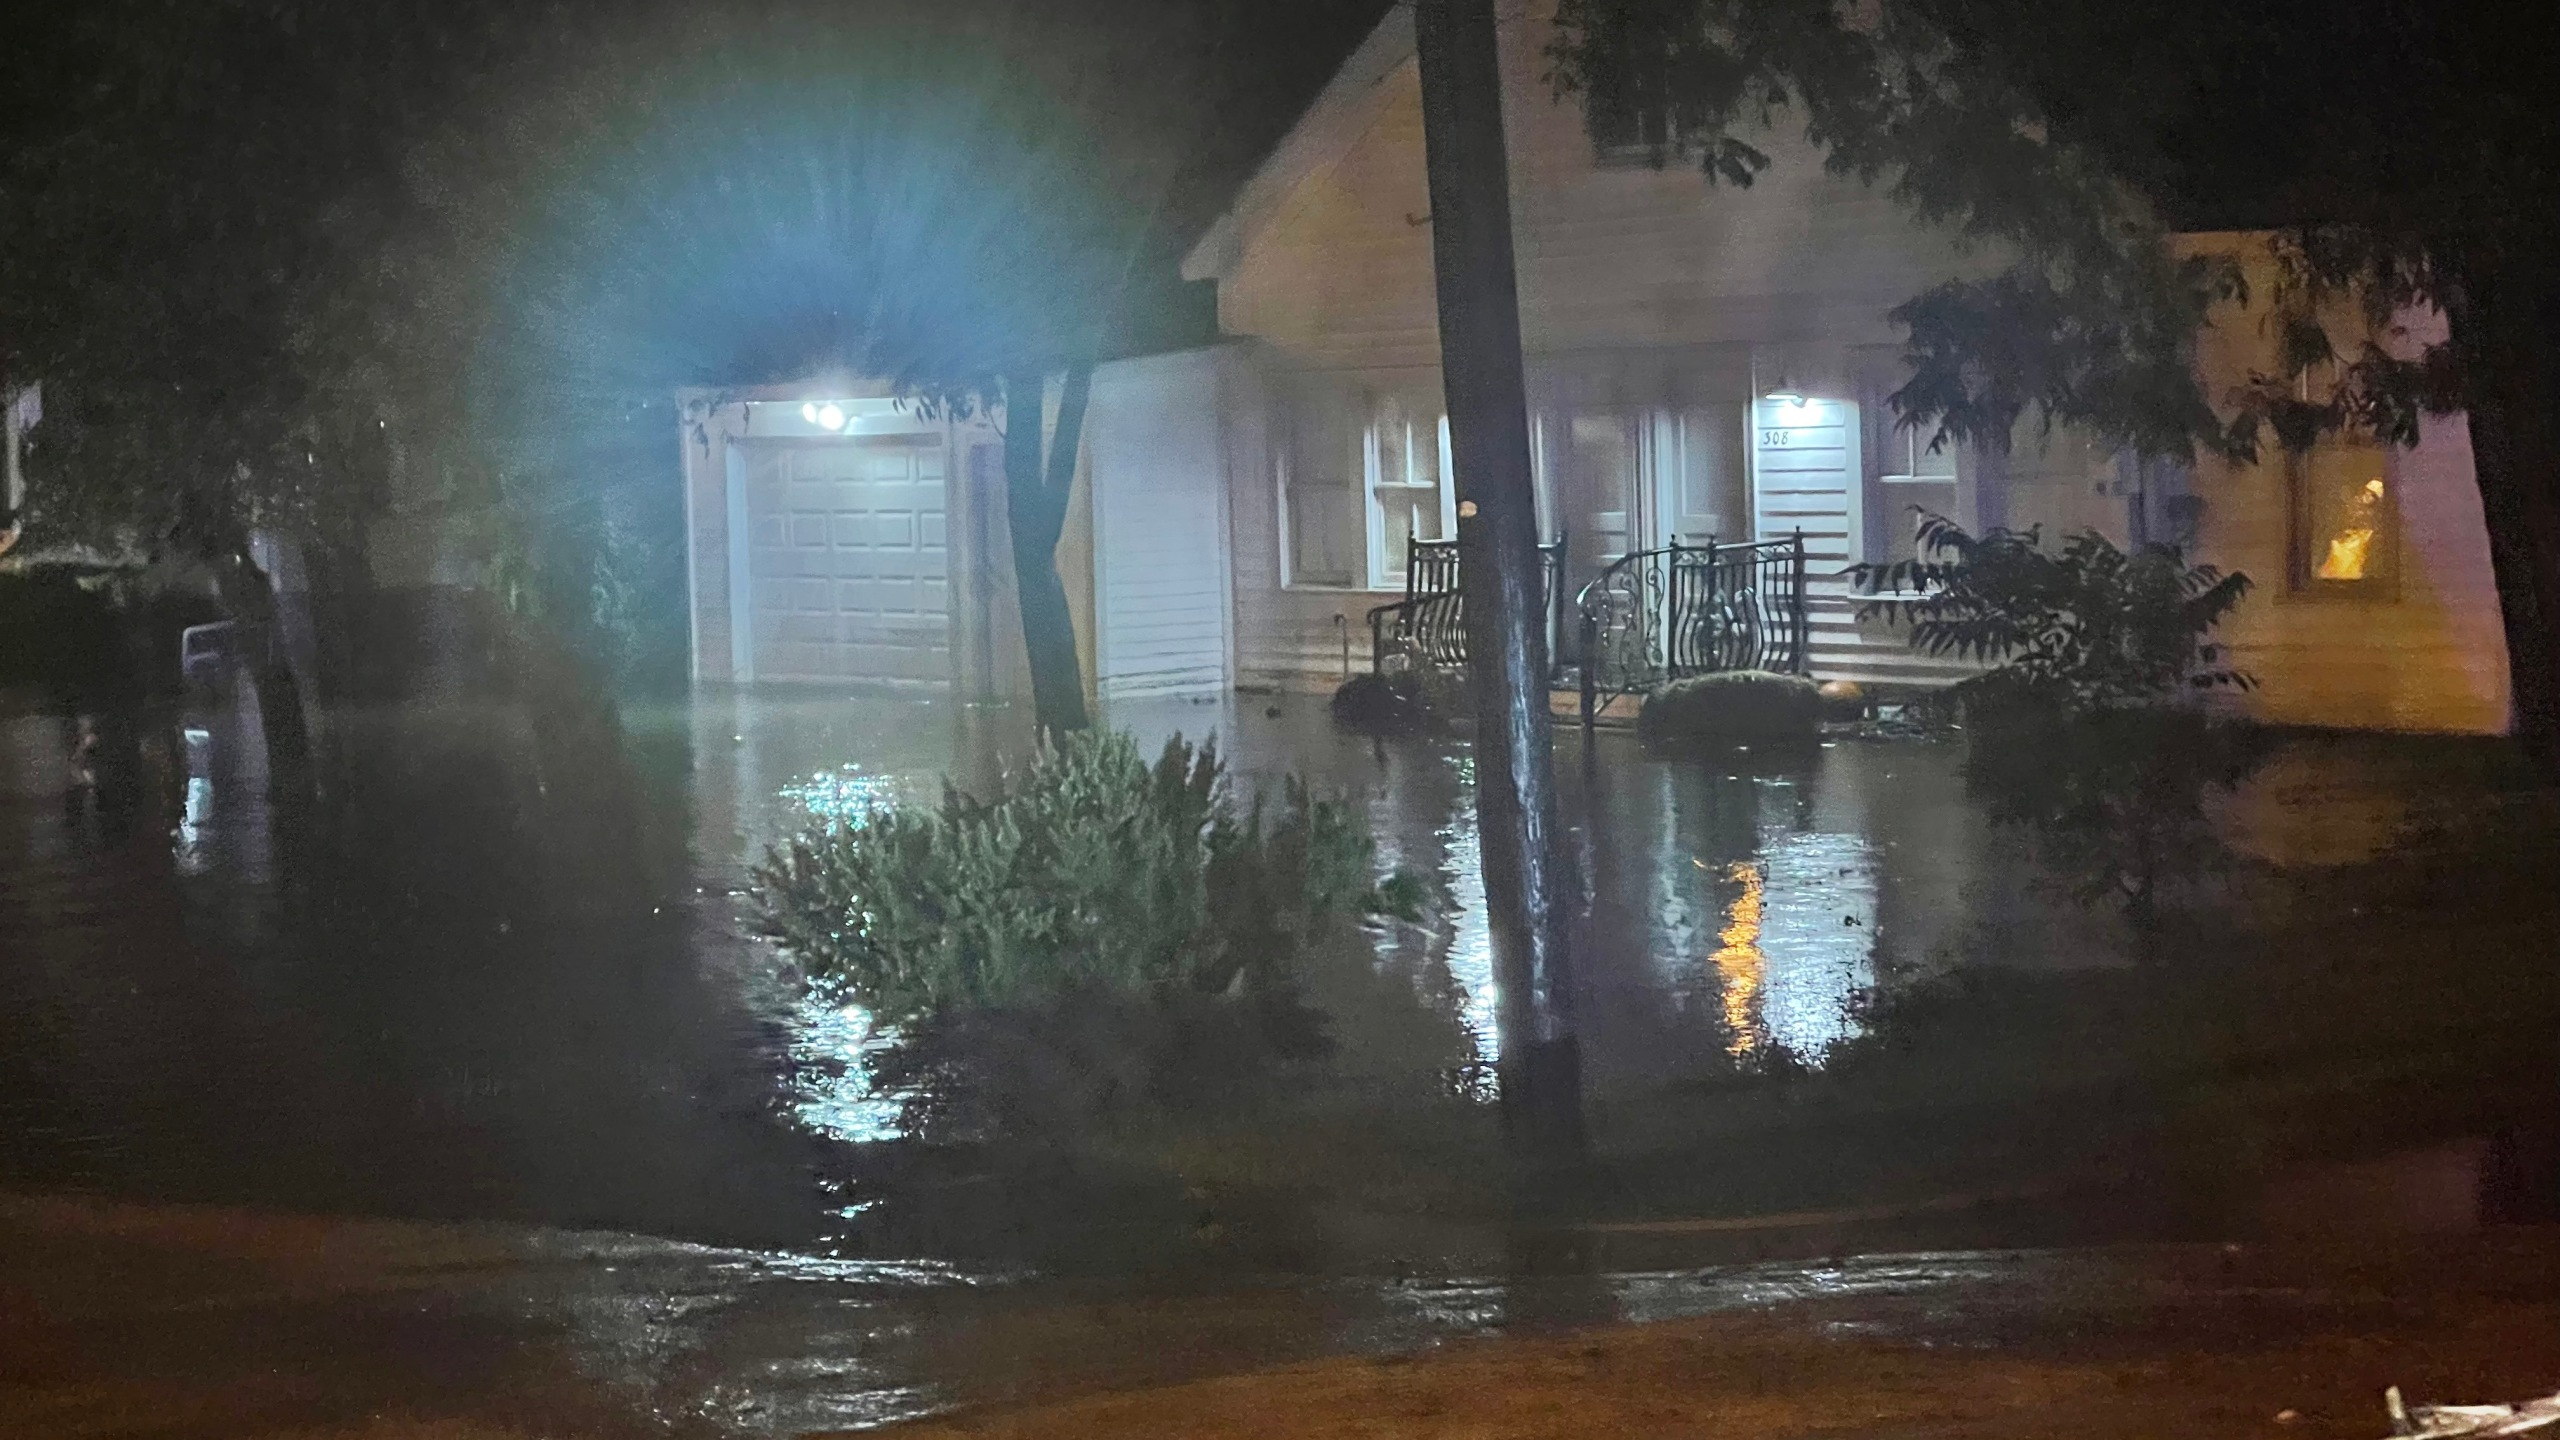 Craig Moreau, chief of Fayette County's Emergency Management and Homeland Security Department, took photos of rising waters reaching homes and other areas in Fayette County Oct. 13, 2021.